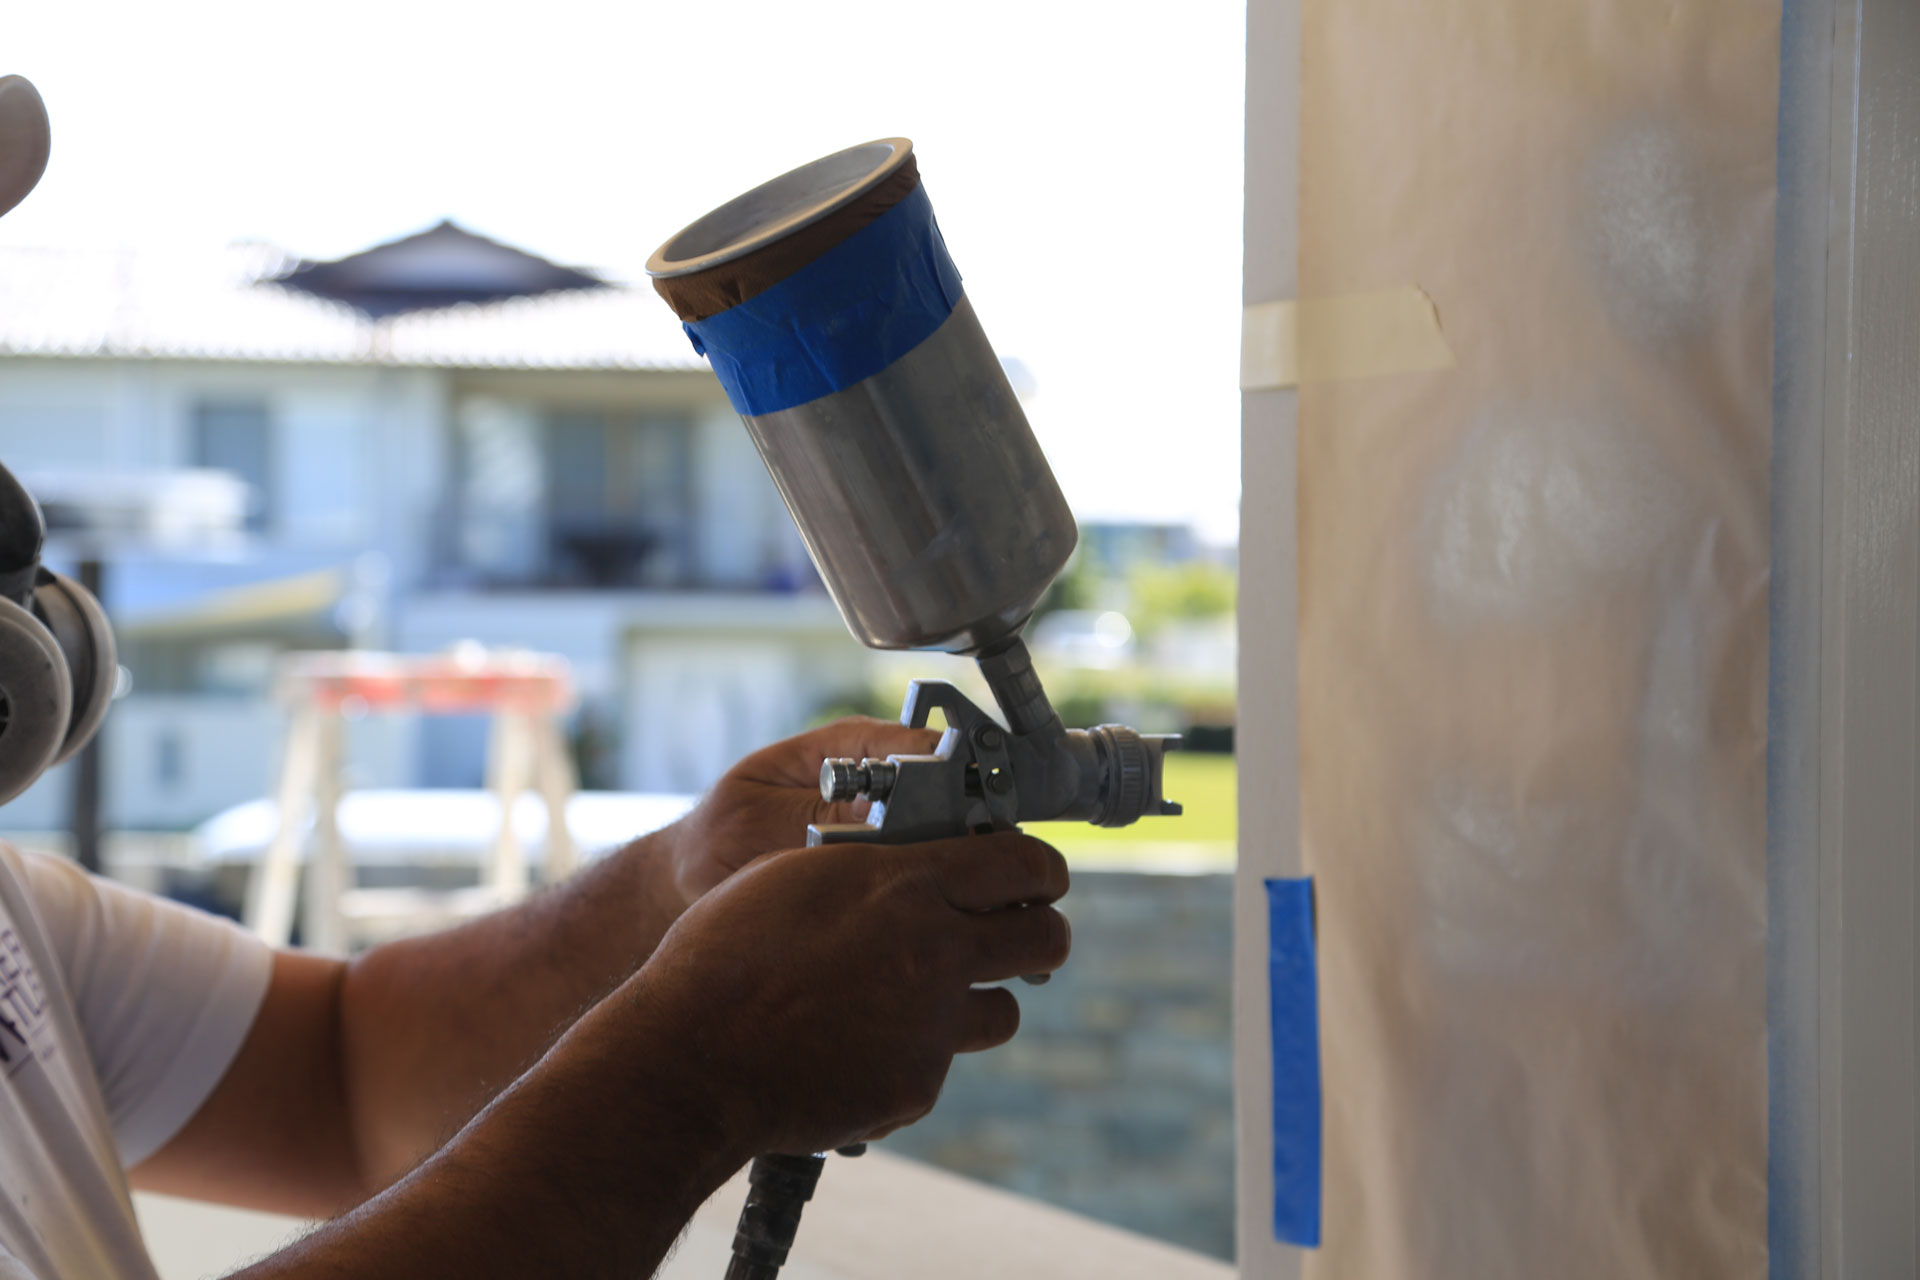 Exterior Wall Paint Job: Is It Time Yet?